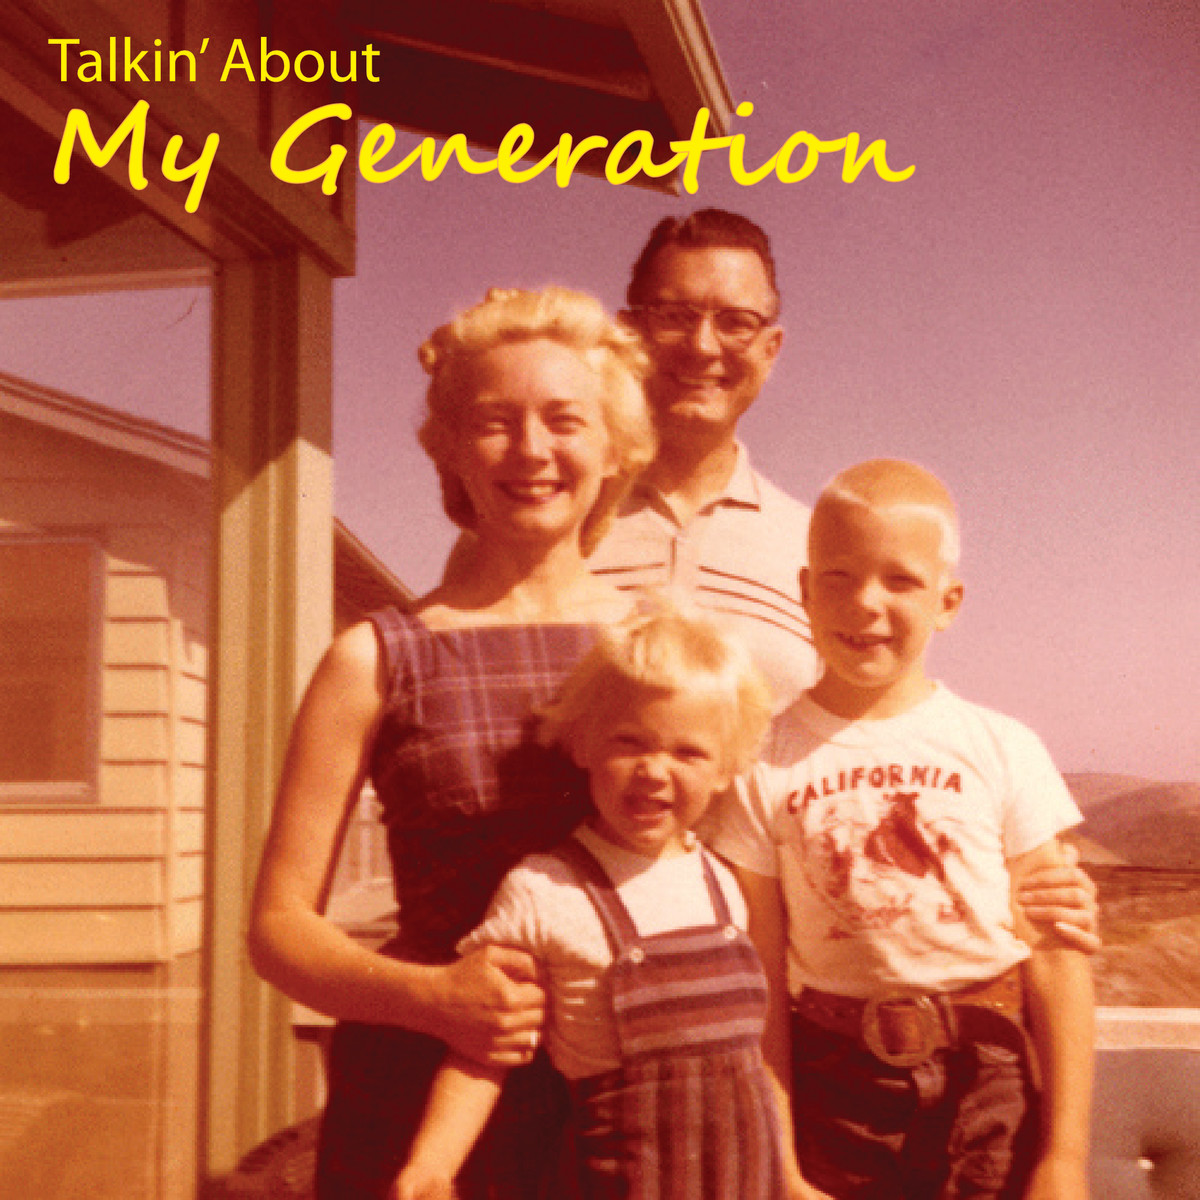 Talking About My Generation: Baby Boomers